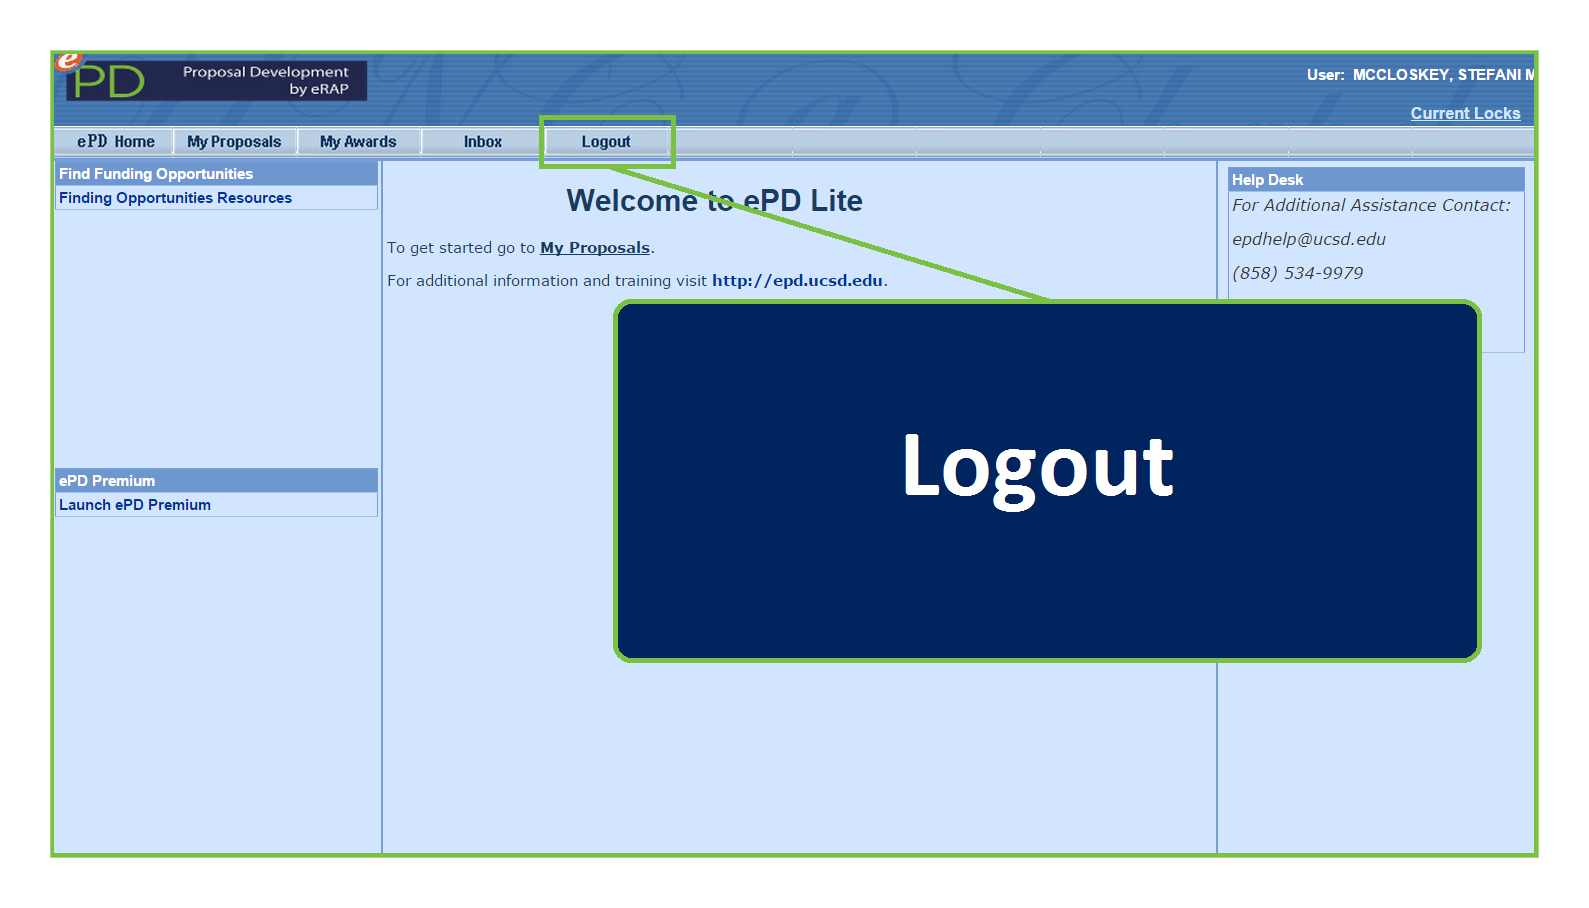 login-logout system research paper This secure site provides students, faculty and staff of central carolina technical college with intranet and internet services [ login ] - [ logout ].